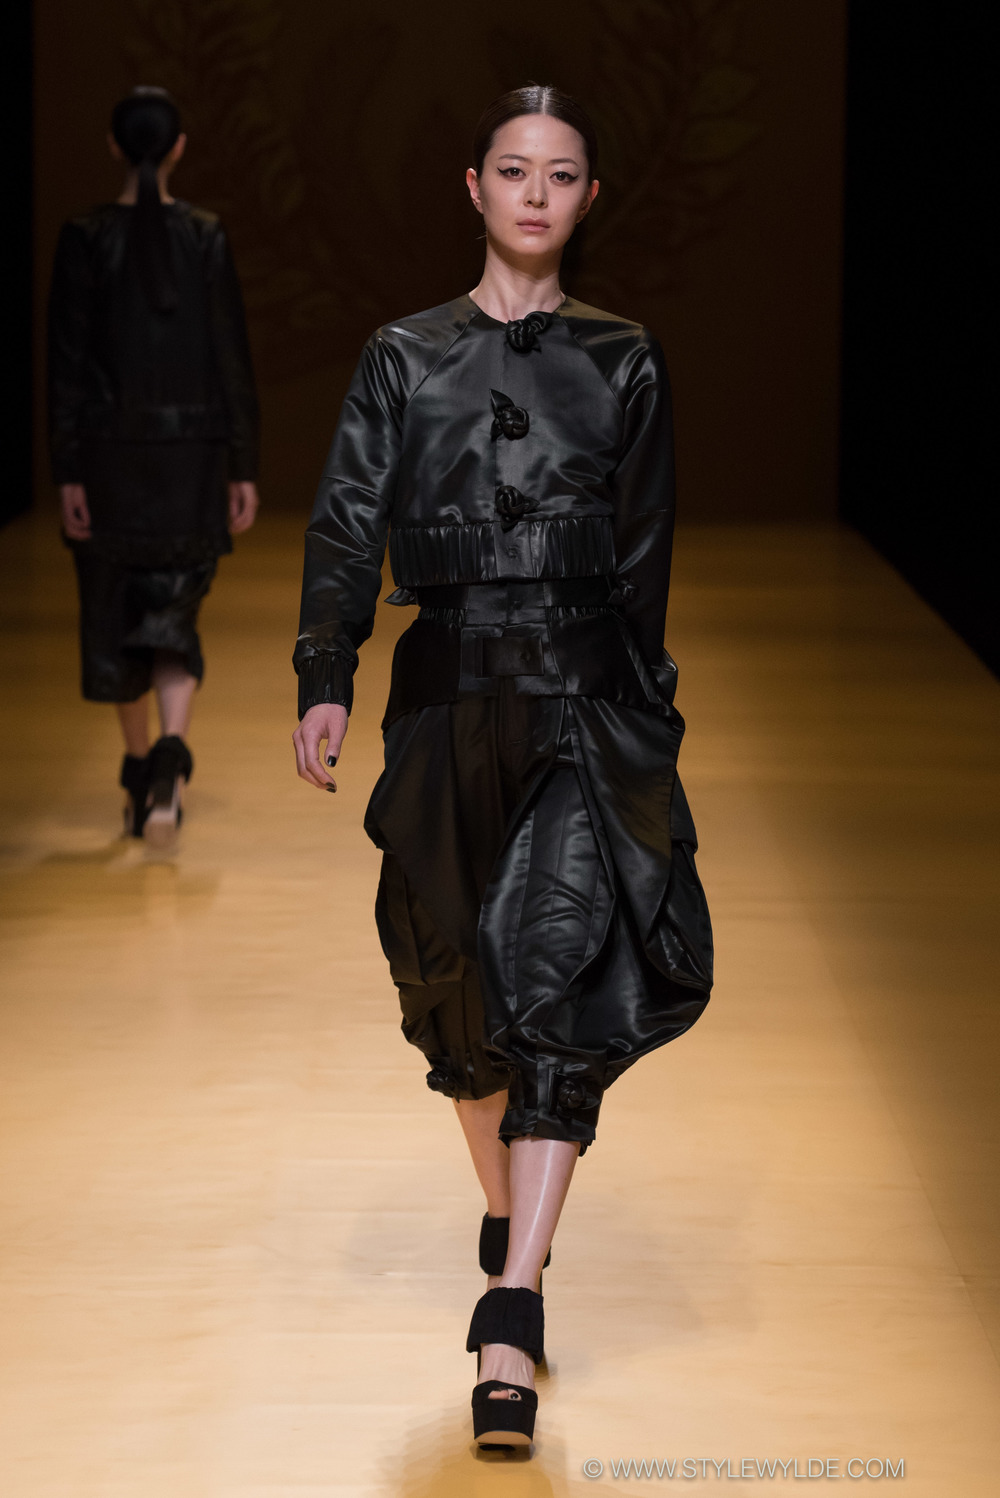 STYLEWYLDE-AsiaFashionMeets-Tokyo_Aw16-16.jpg